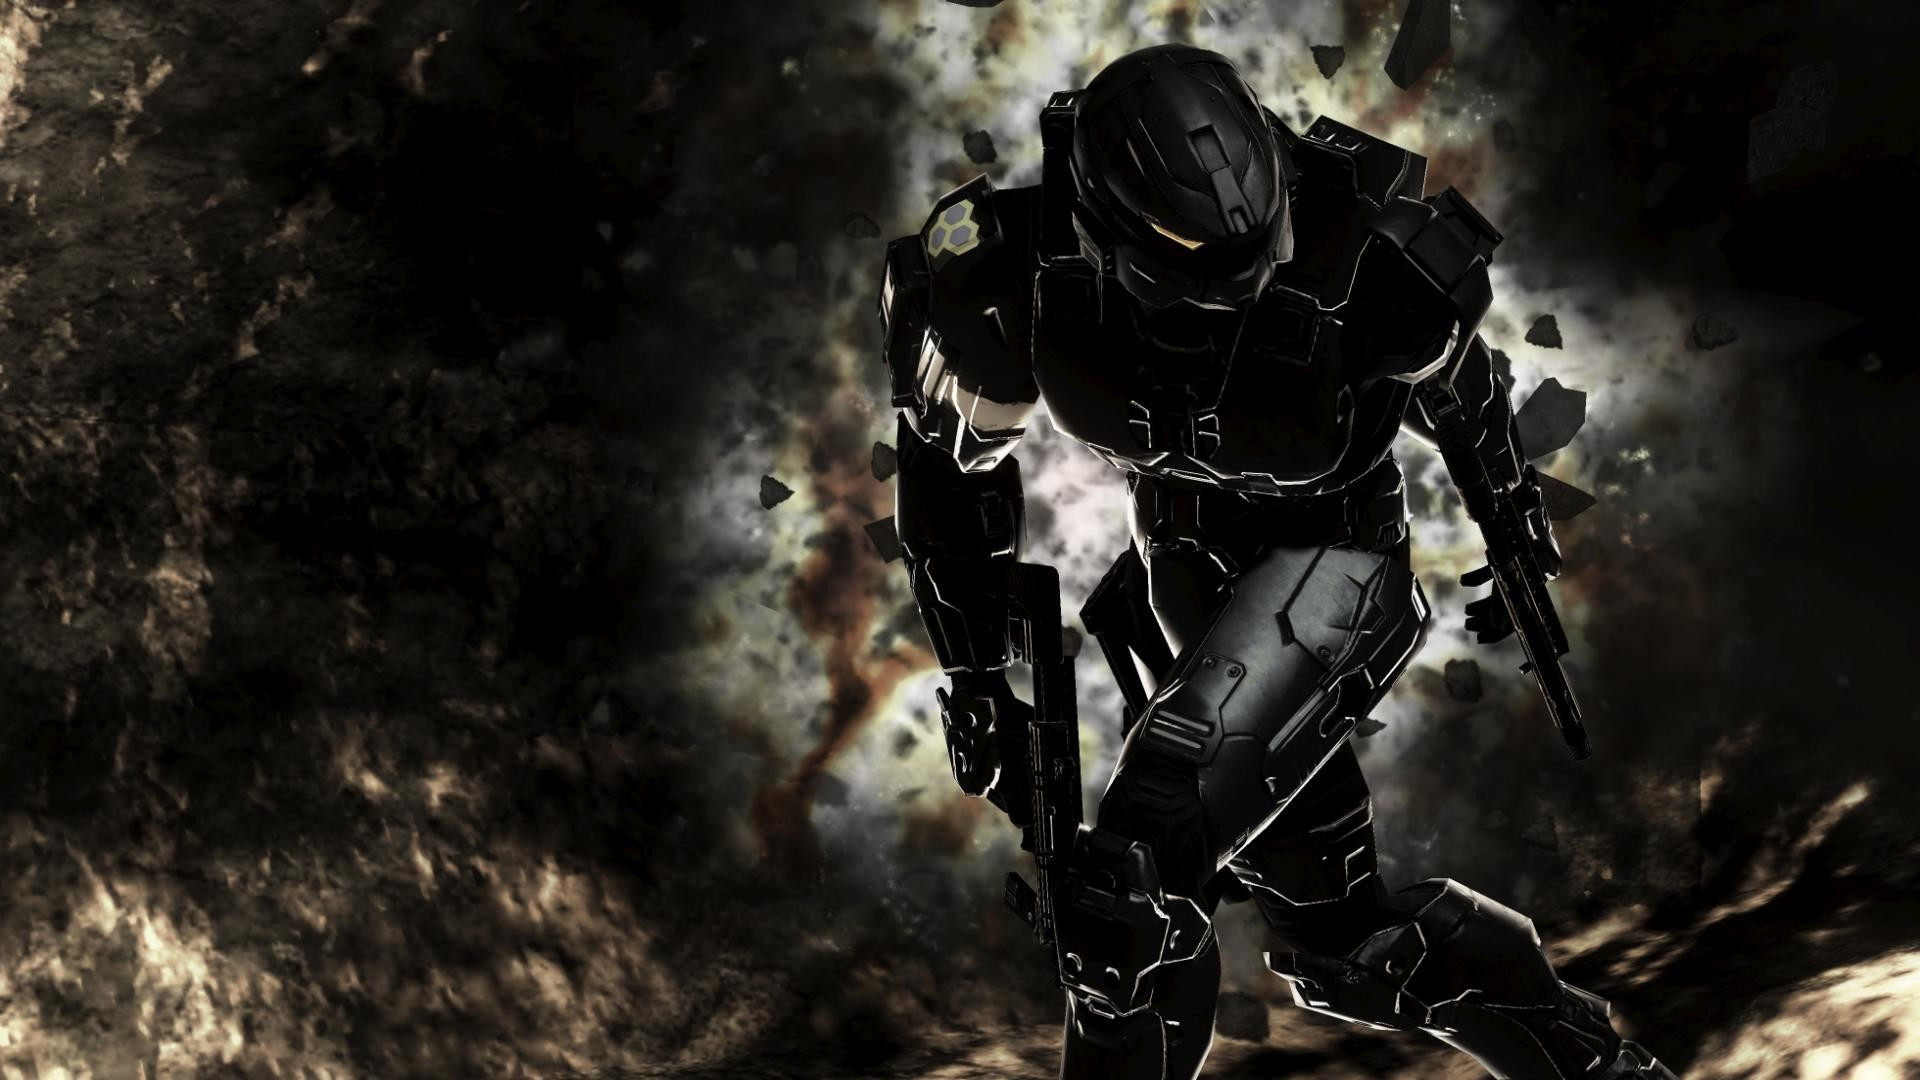 Wallpapers For > Cool Halo 3 Wallpapers